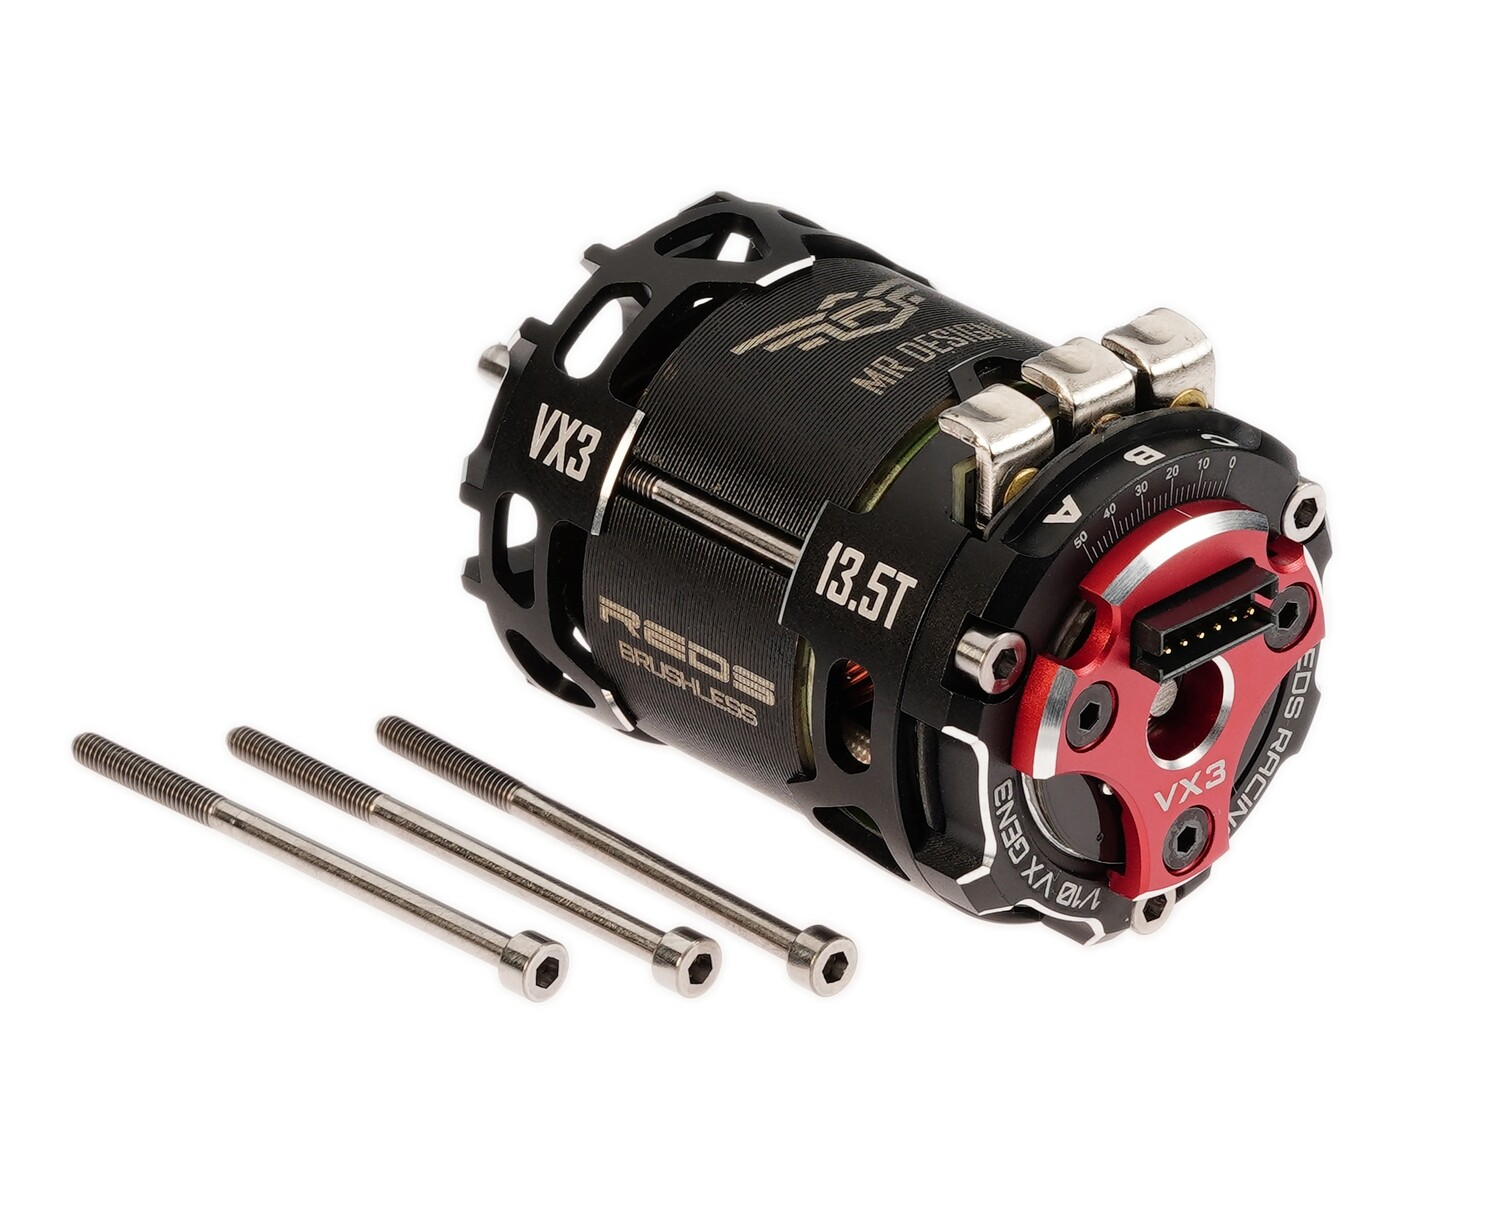 BRUSHLESS MOTOR REDS VX3 540 10.5T 2 POLE SENSORED FACTORY SELECTED